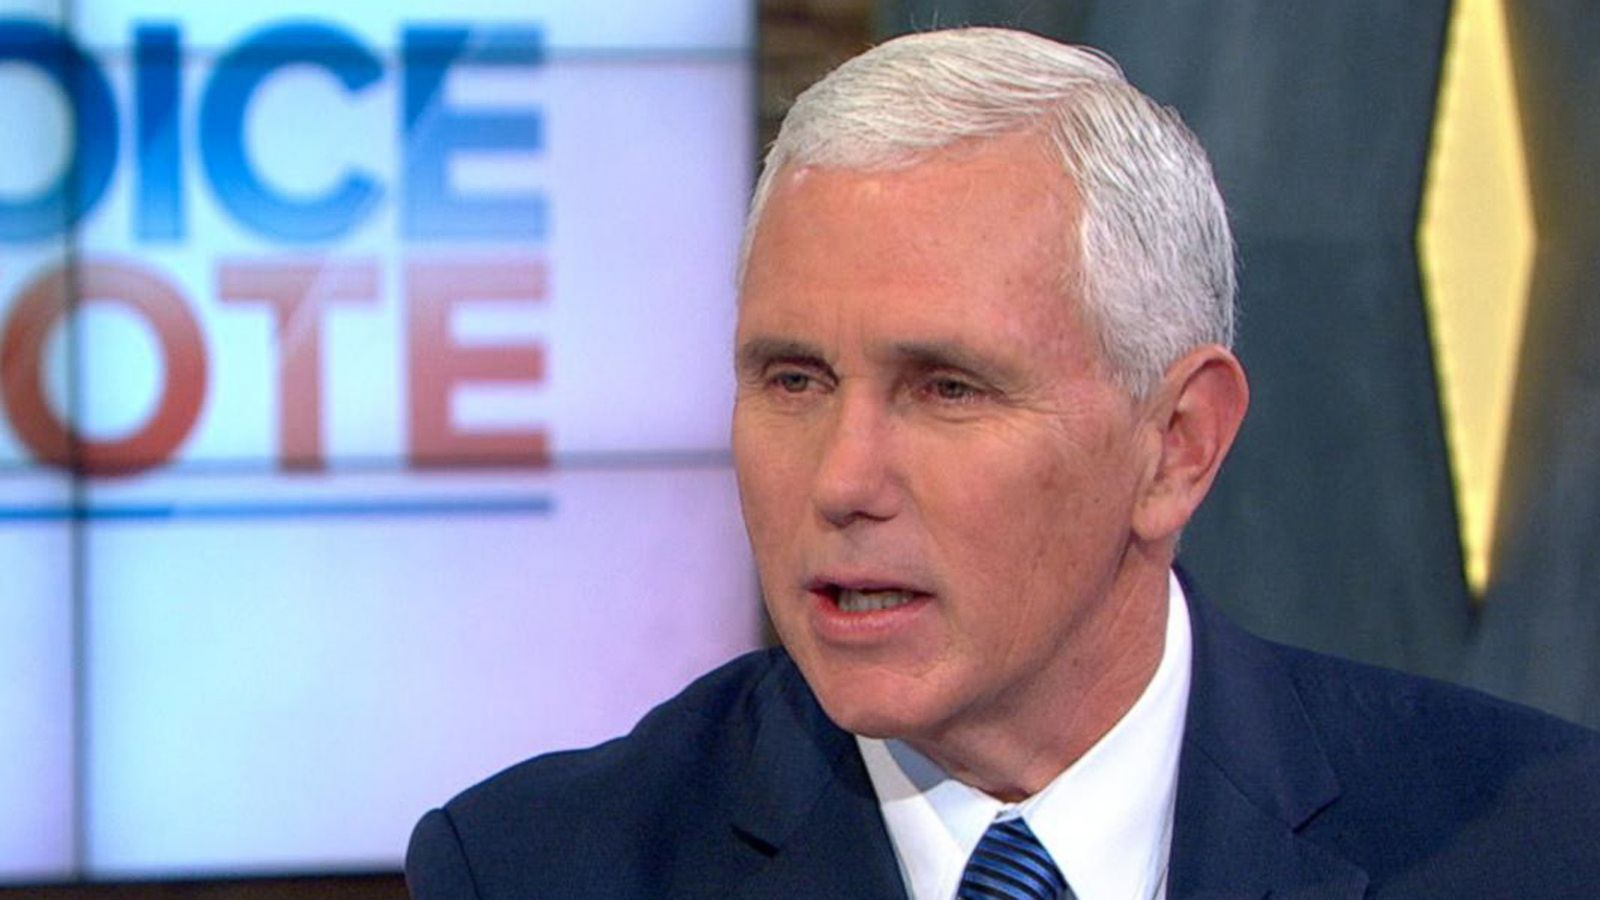 VIDEO: 'GMA' Host List: Mike Pence Describes Plane Scare at LaGuardia